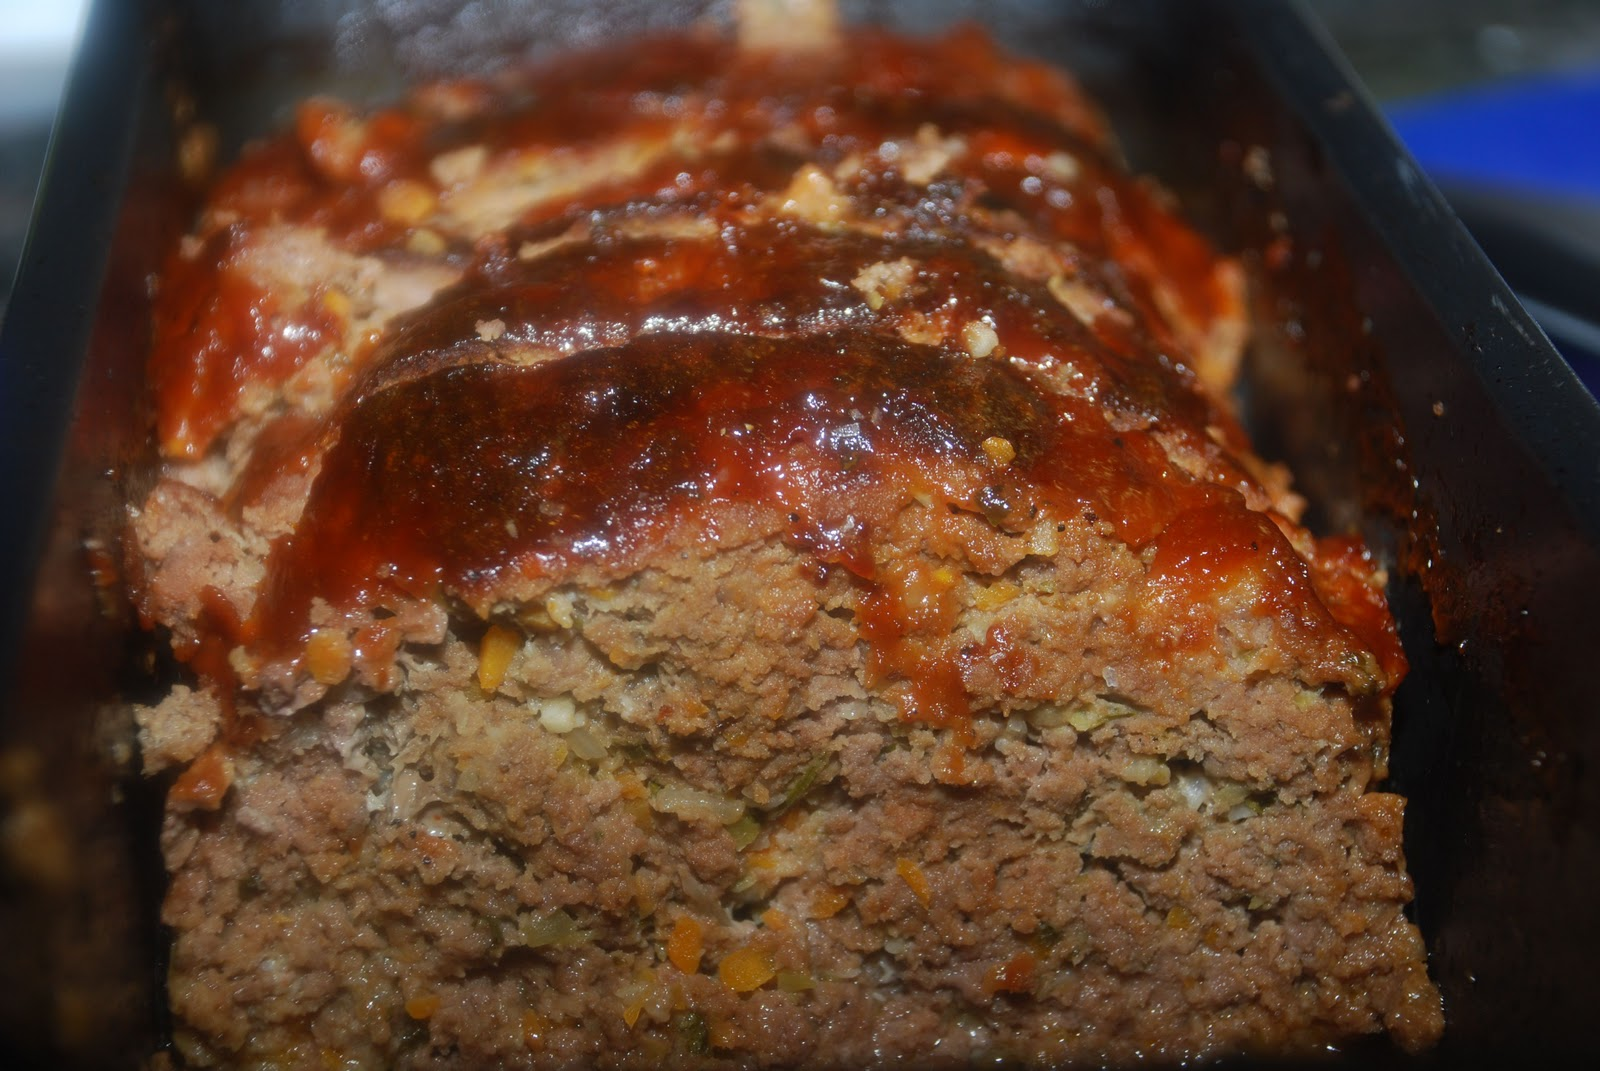 ... on the Vine: Craving Comfort Food? Meatloaf with Barbecue Glaze